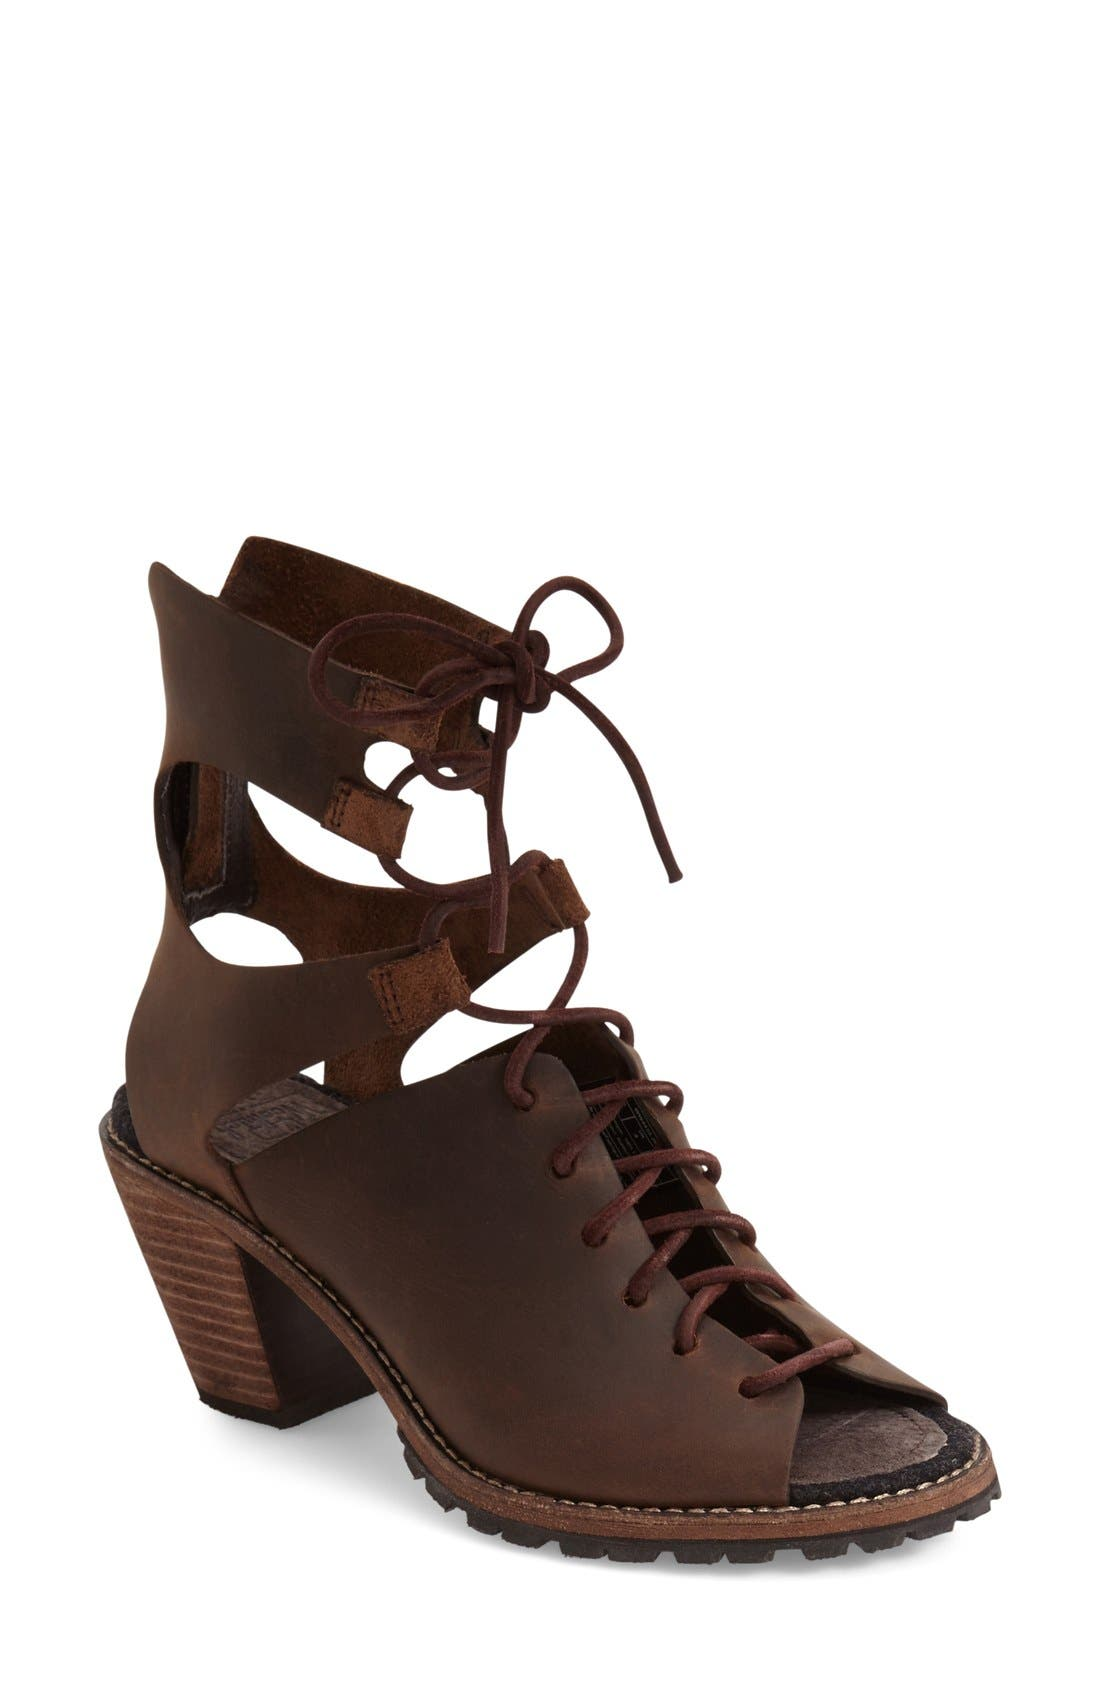 'Mohave Arroyo' Lace-Up Boot,                             Main thumbnail 2, color,